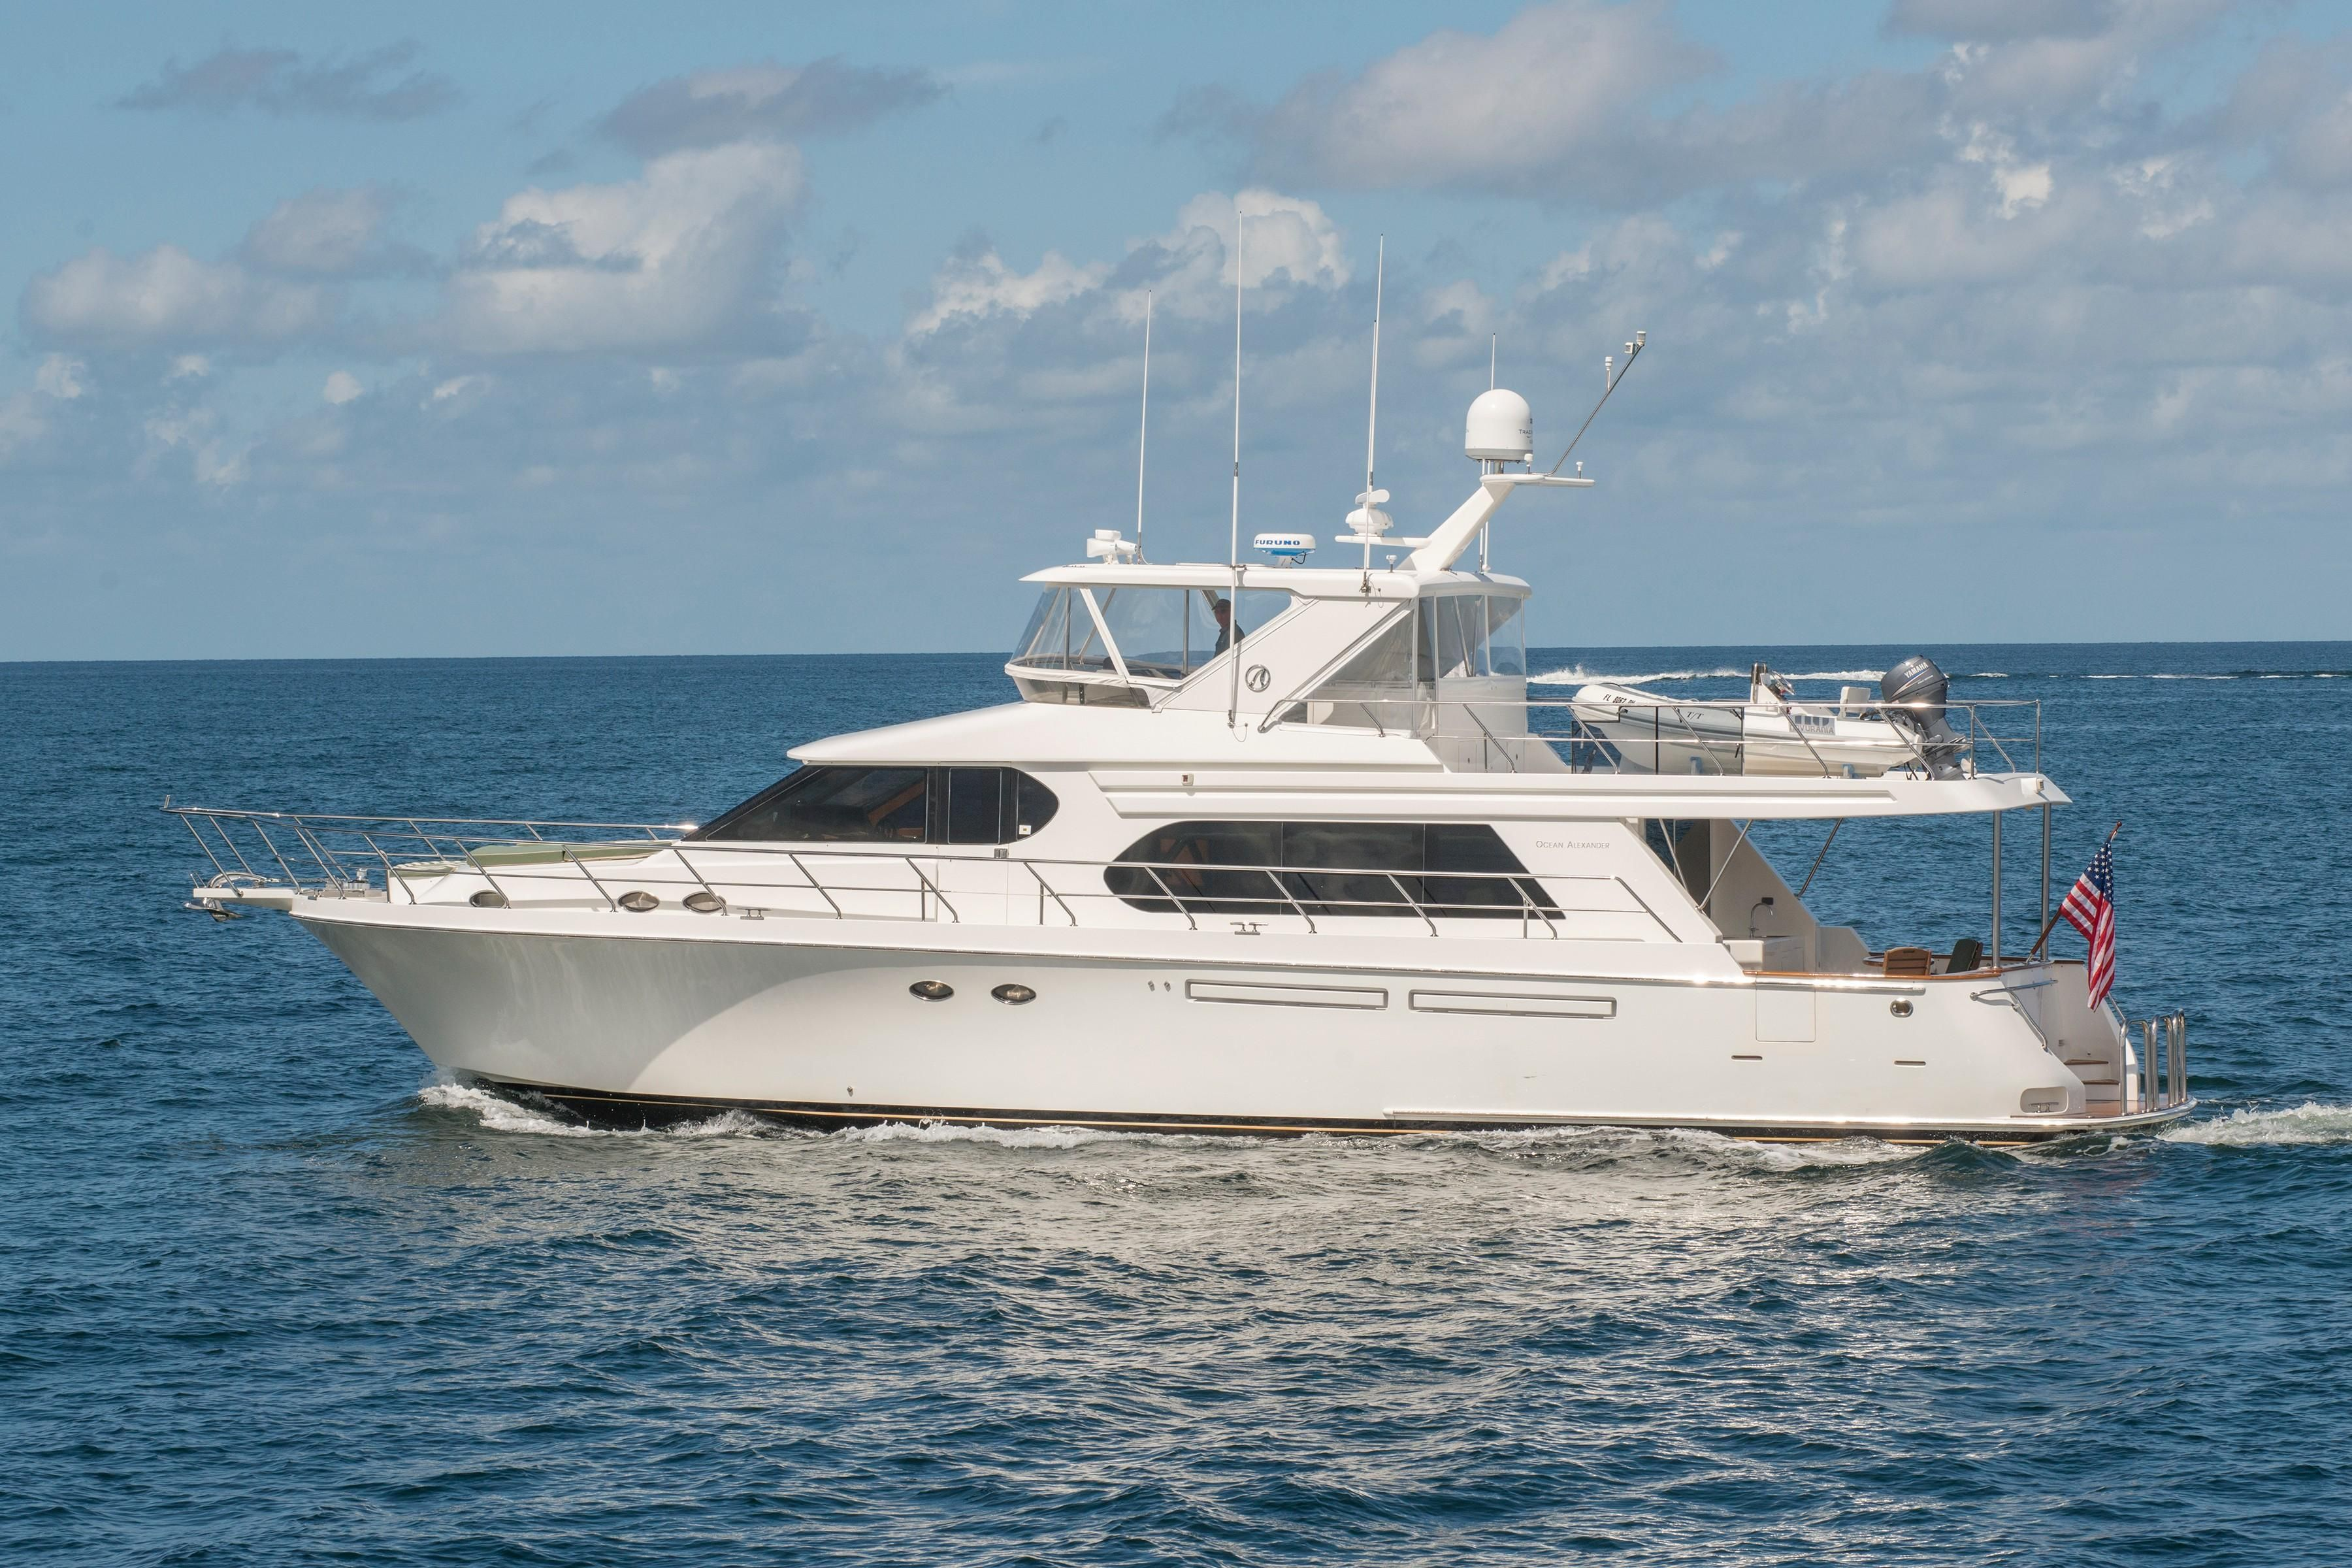 2009 ocean alexander 64 pilothouse motor yacht power boat for Ocean yachts 48 motor yacht for sale